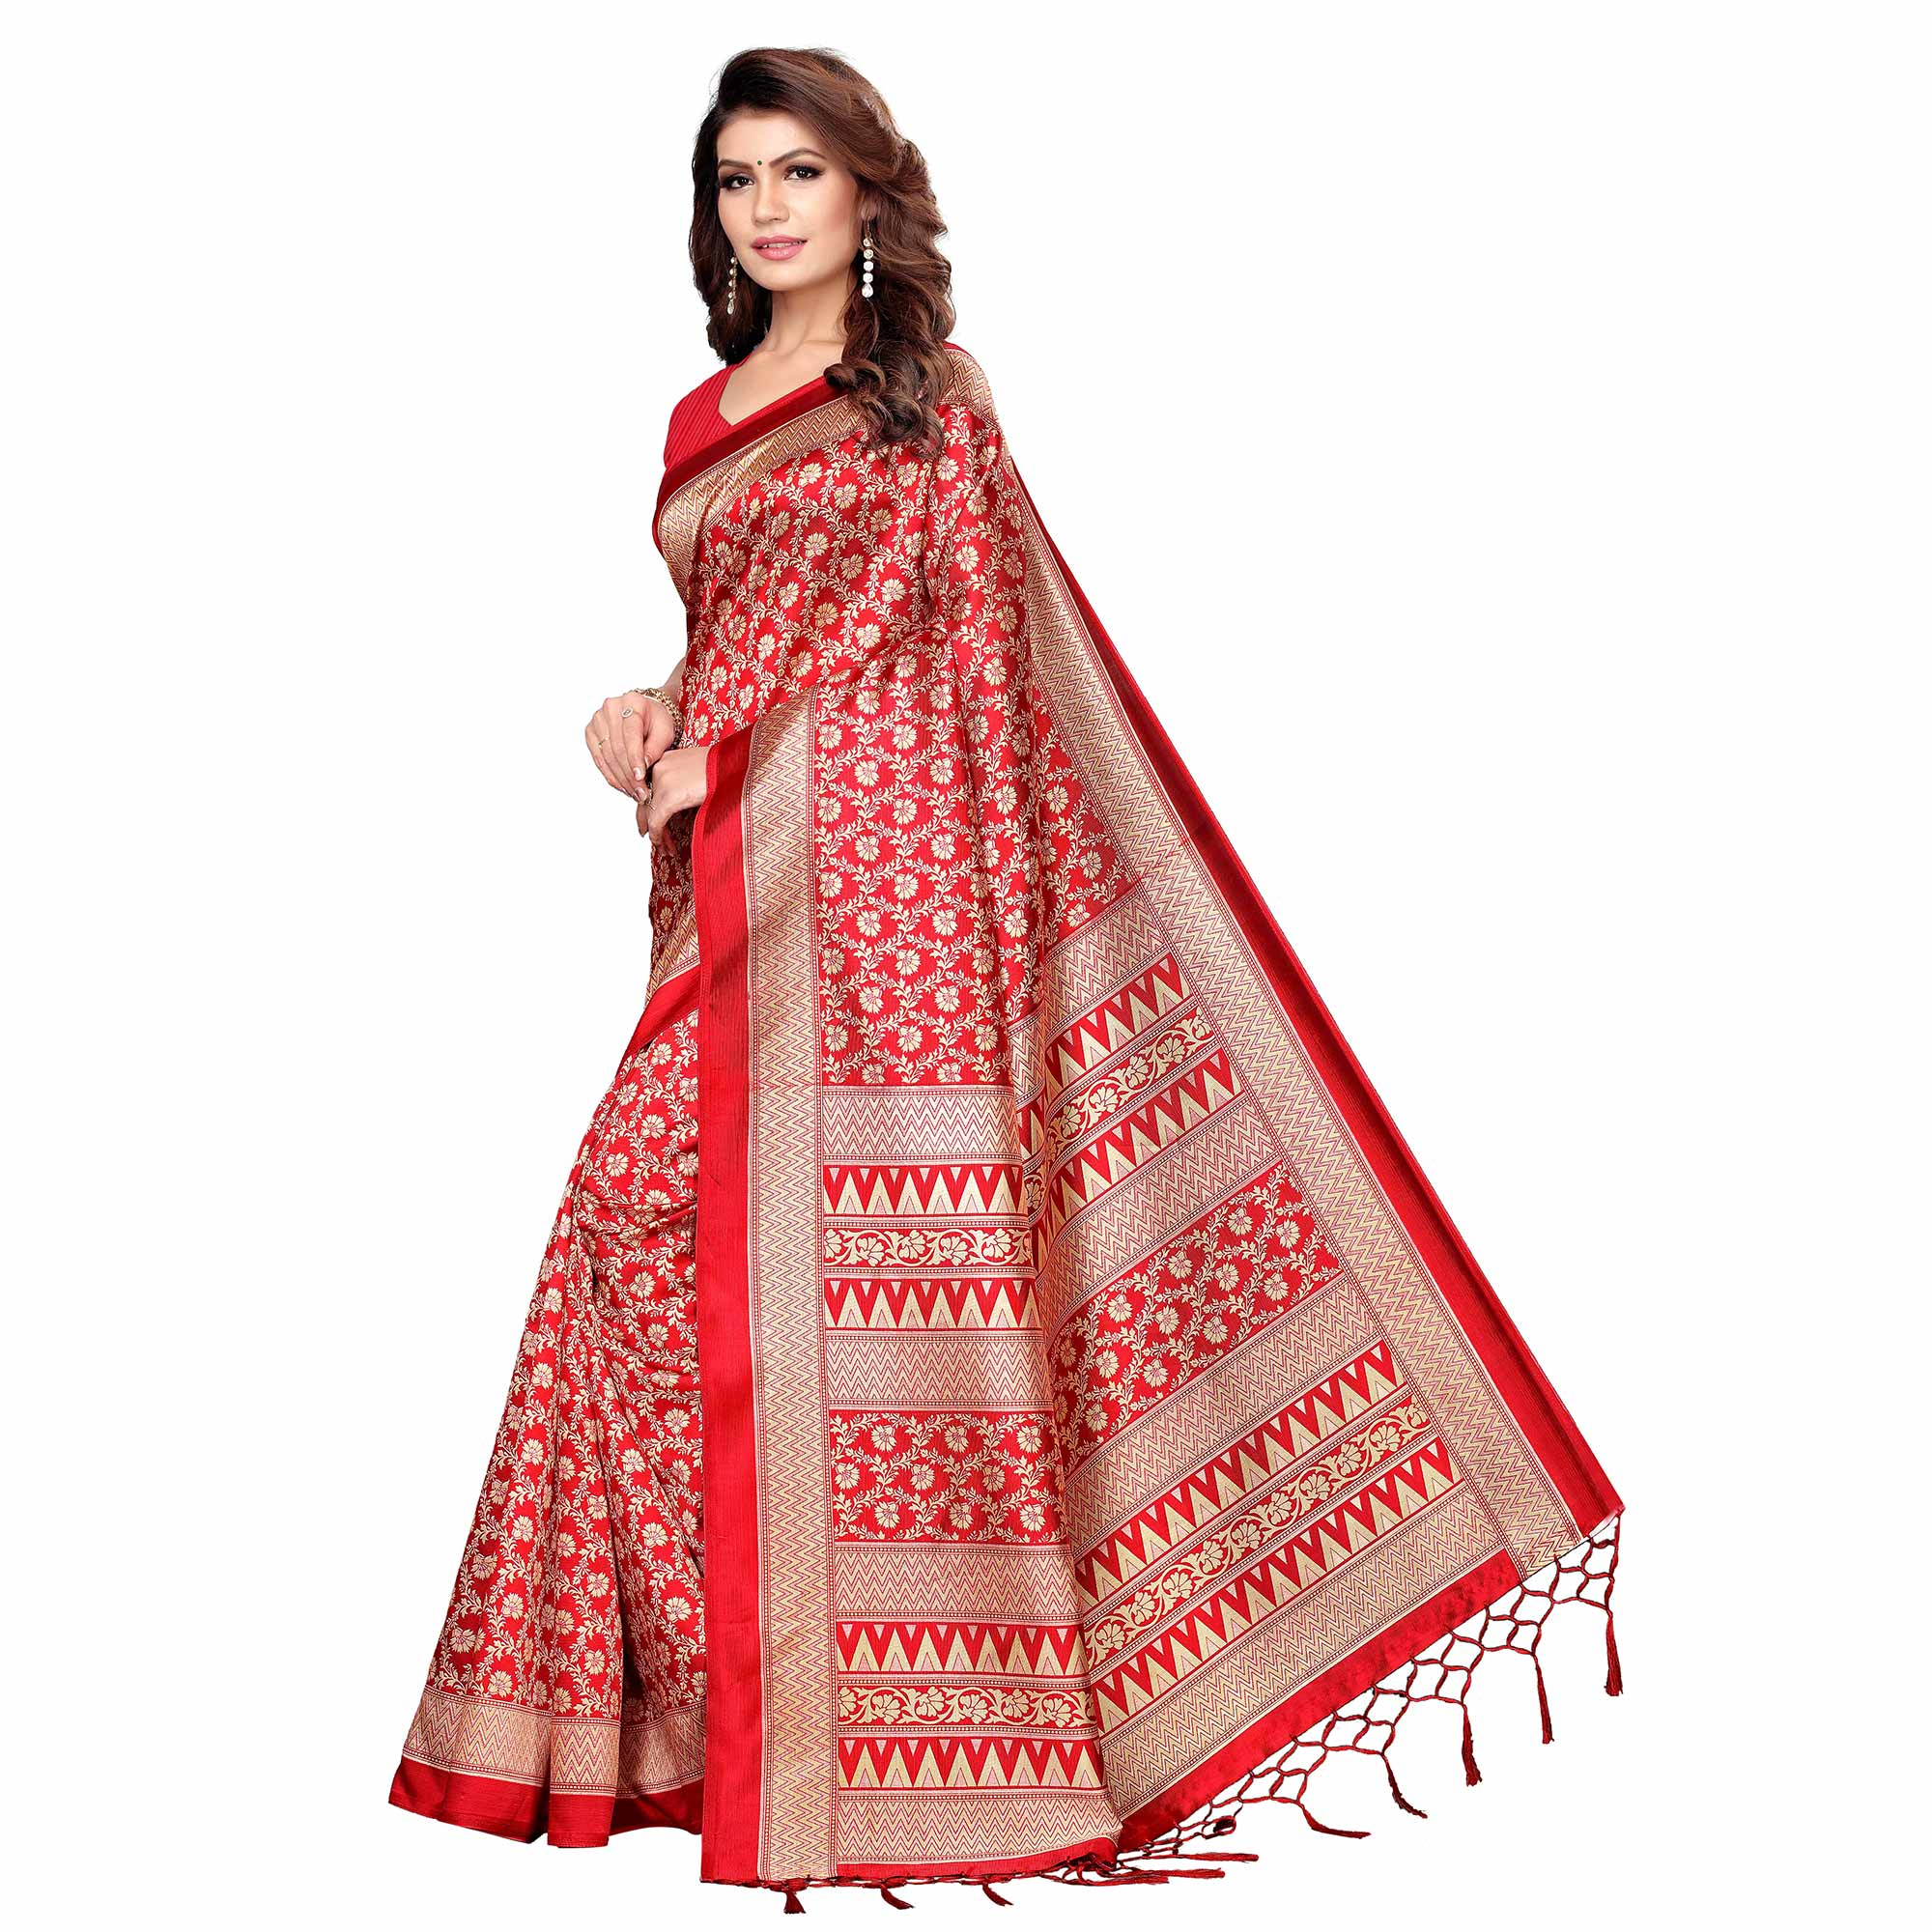 Radiant Red Colored Festive Wear Printed Khadi Silk Saree